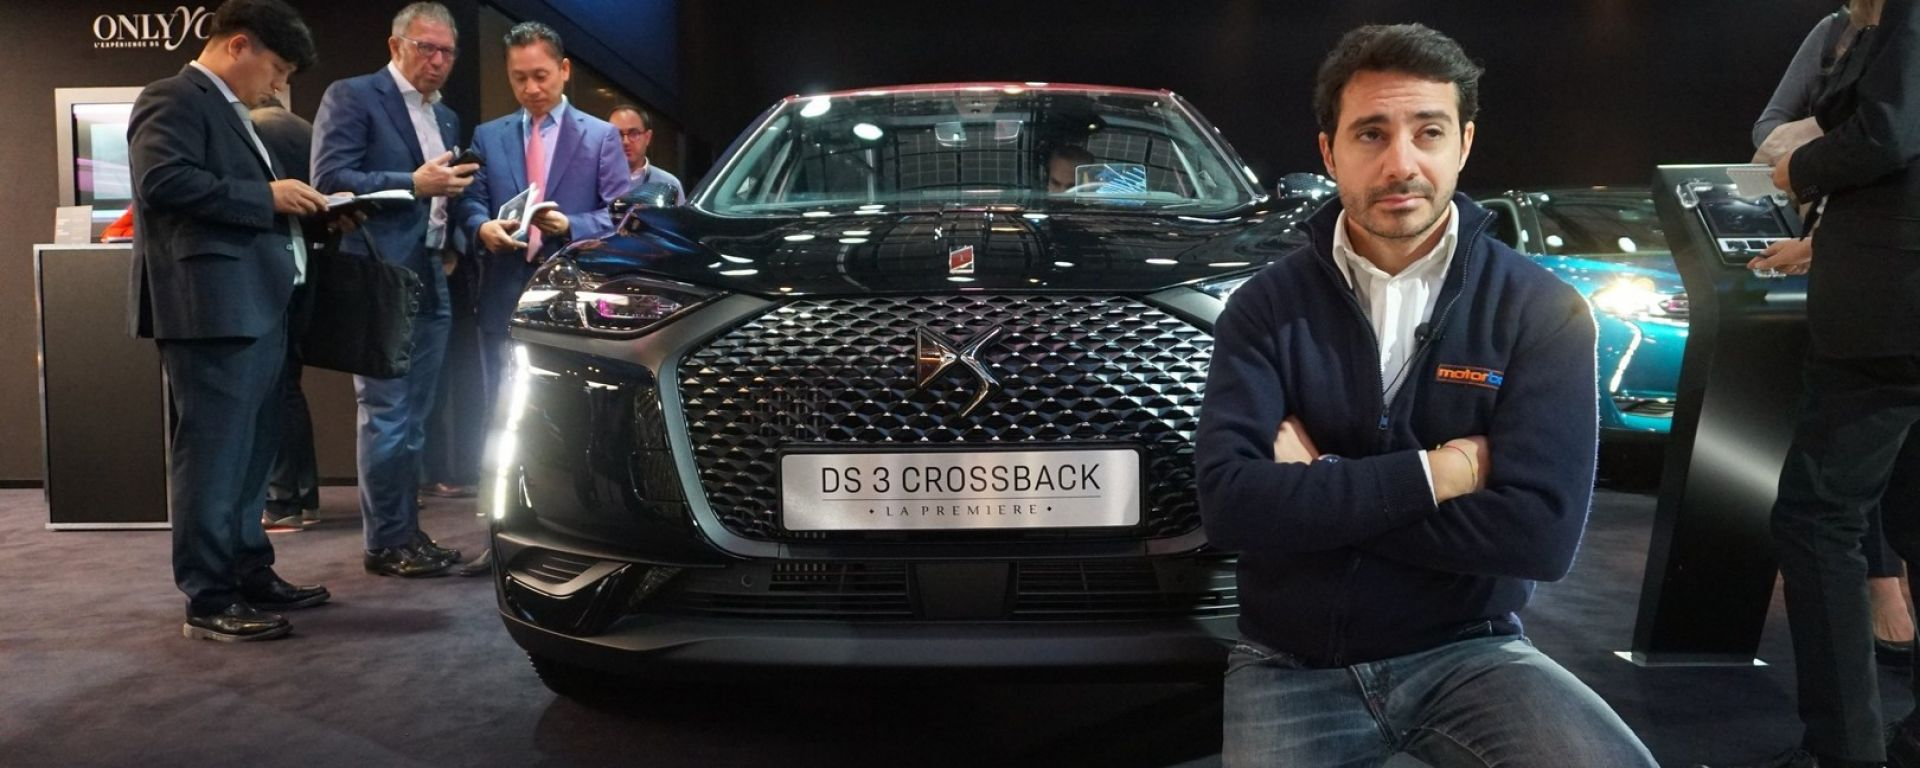 Nuova DS 3 Crossback: in video dal Salone di Parigi 2018